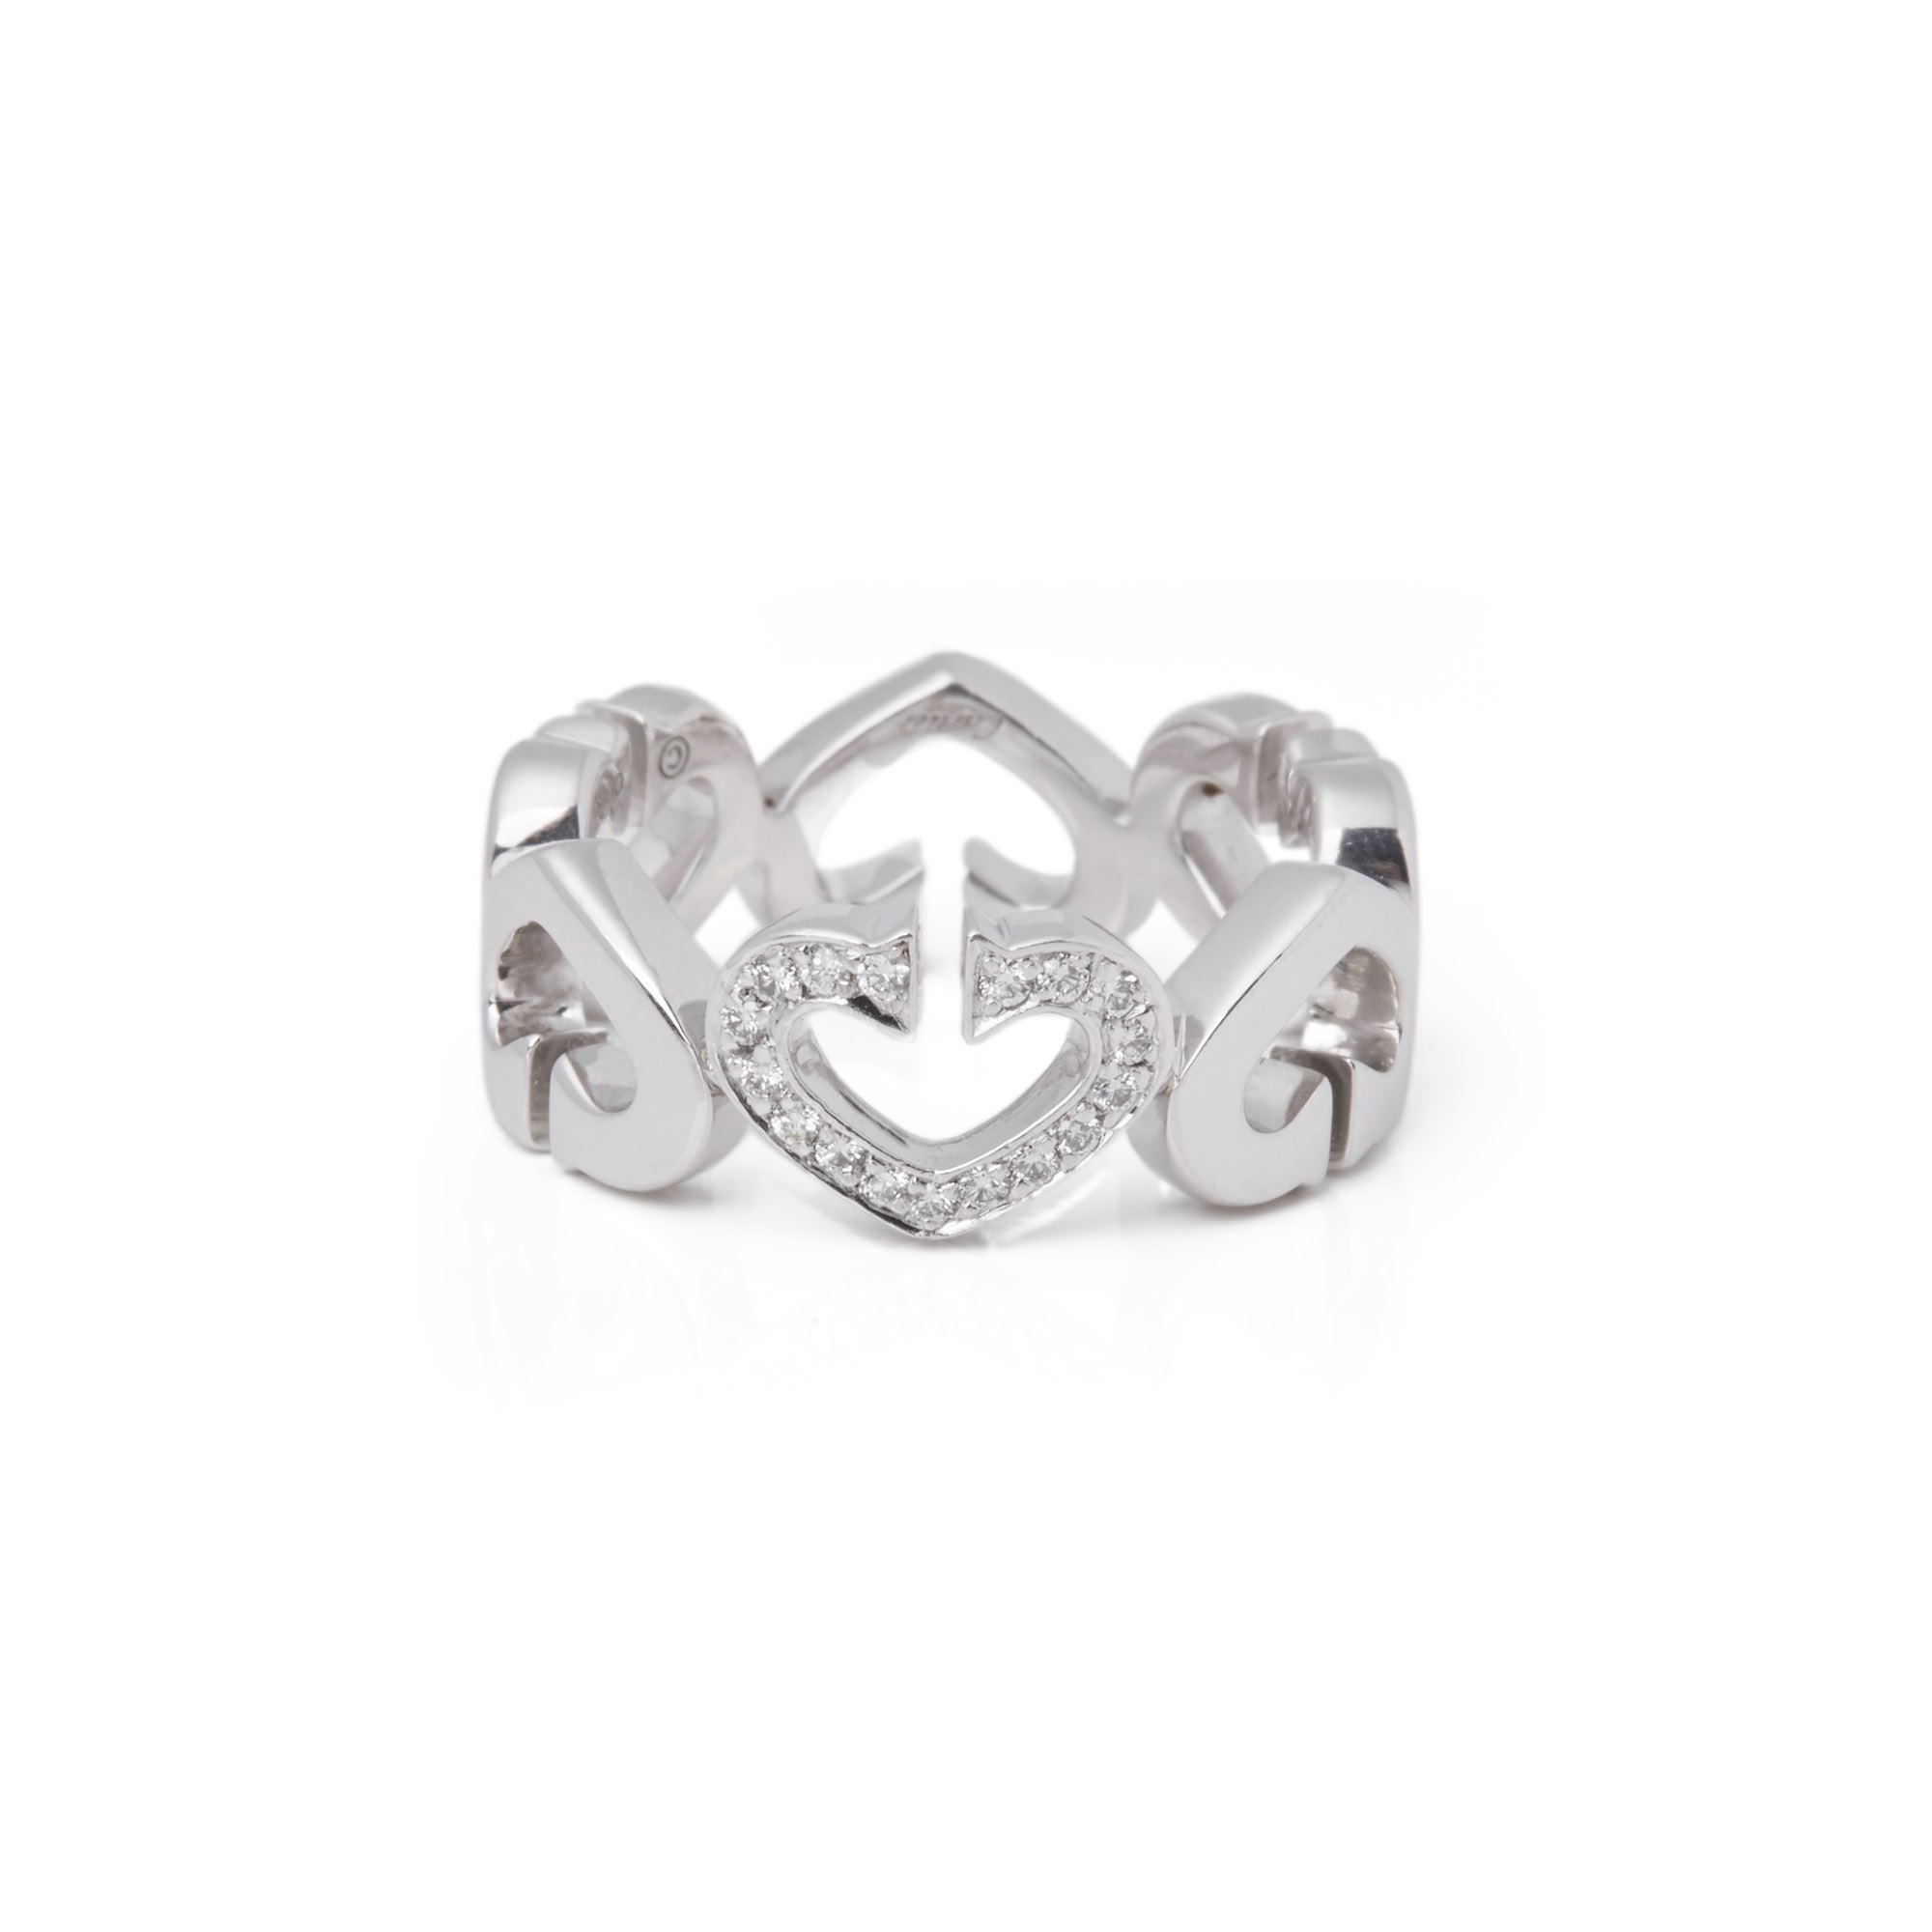 Cartier 18k White Gold Hearts and Symbols Ring